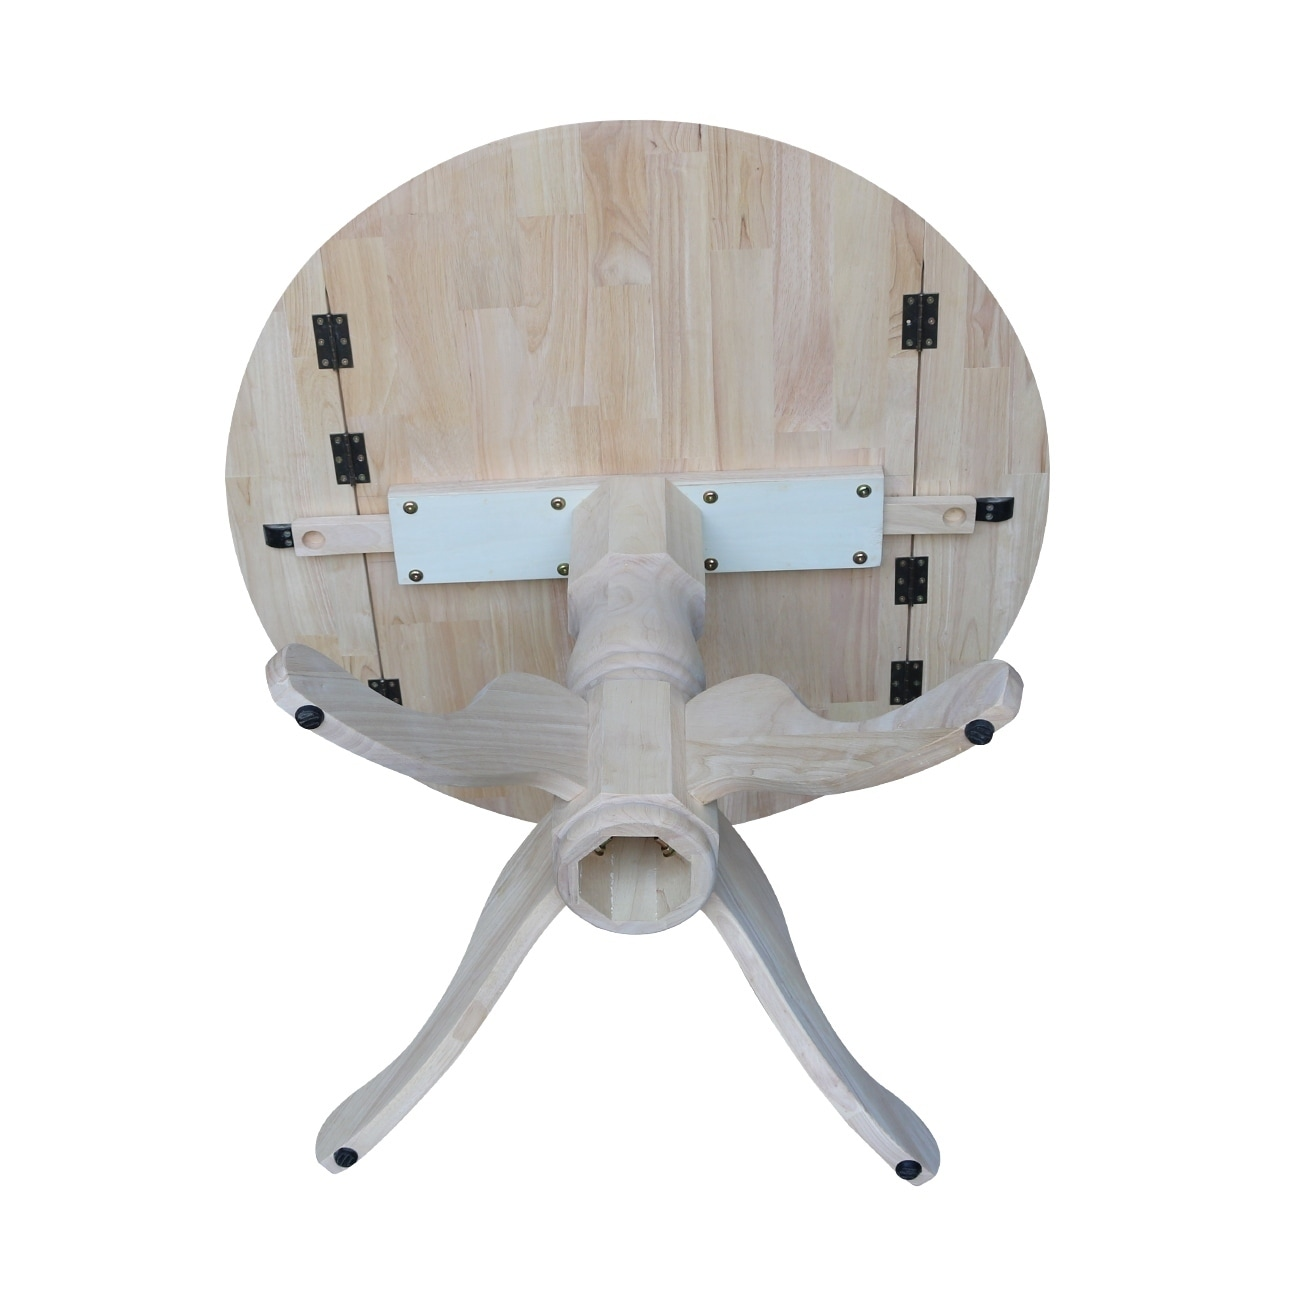 International Concepts Unfinished Round 36 Inch Dual Drop Leaf Dining Table On Free Shipping Today 9330875